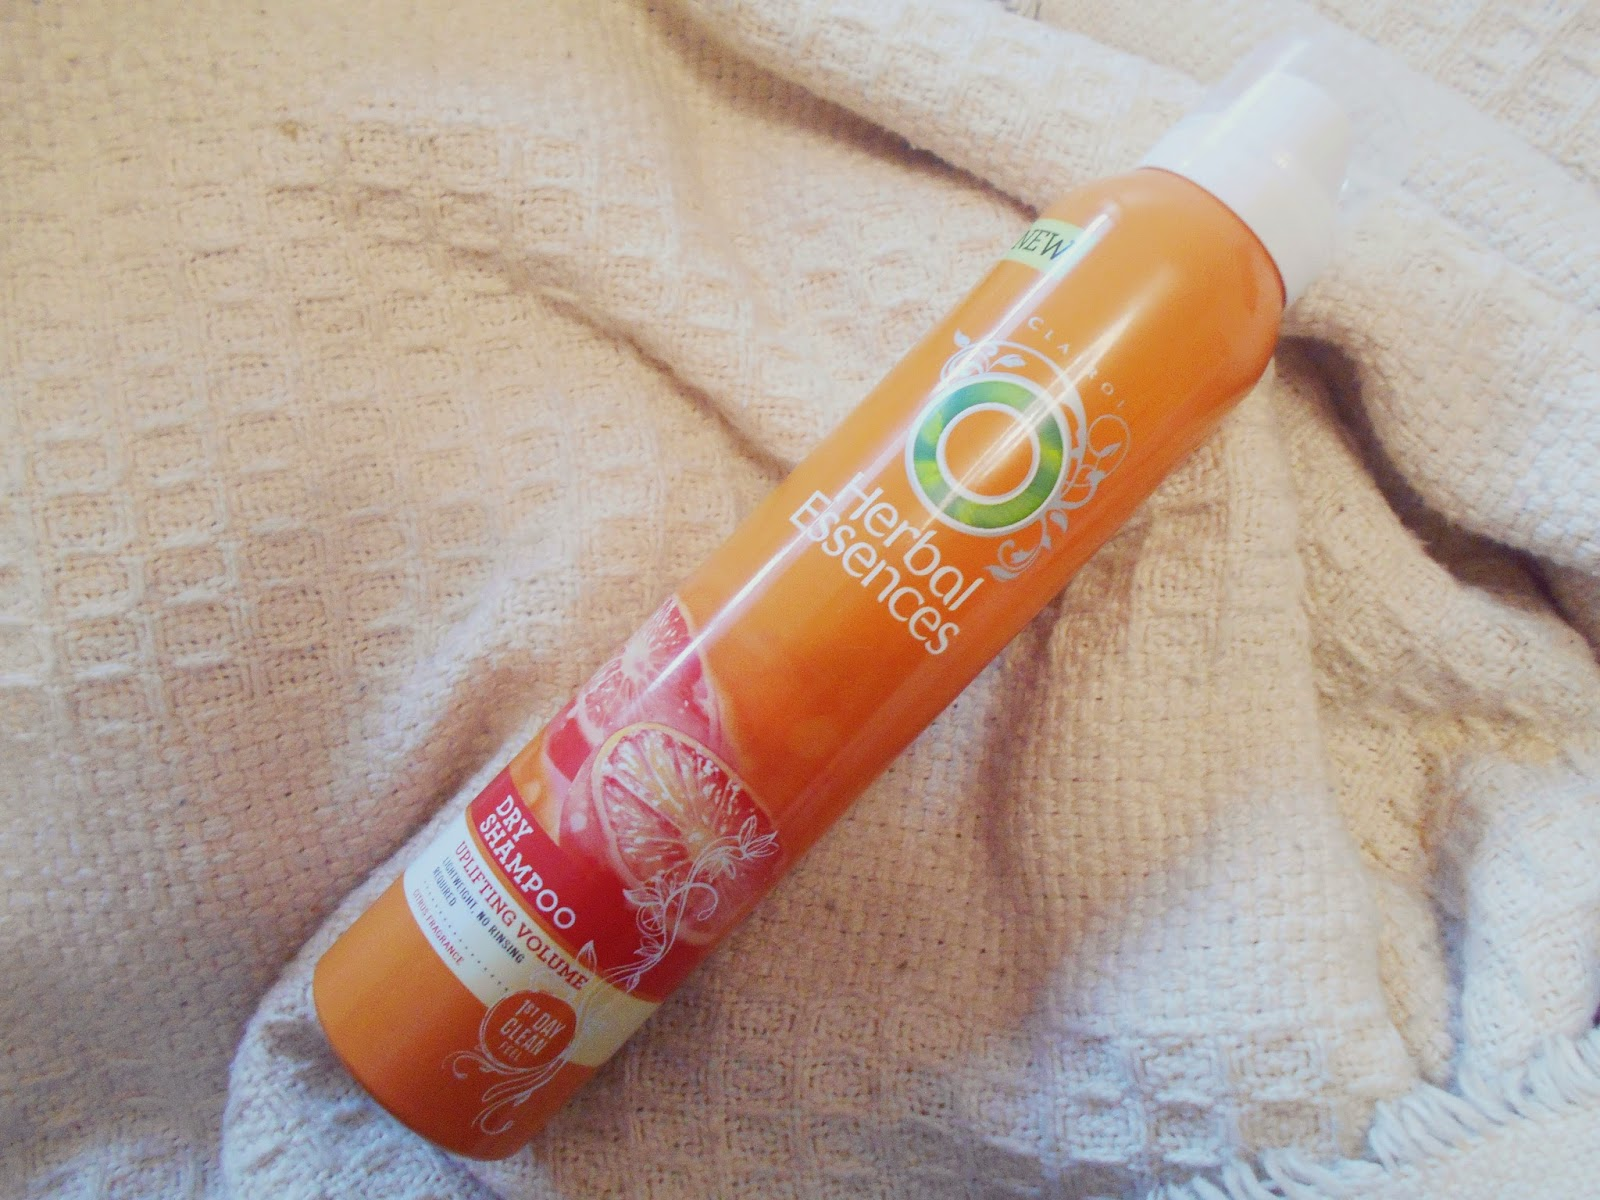 A New Type Of Dry Shampoo?